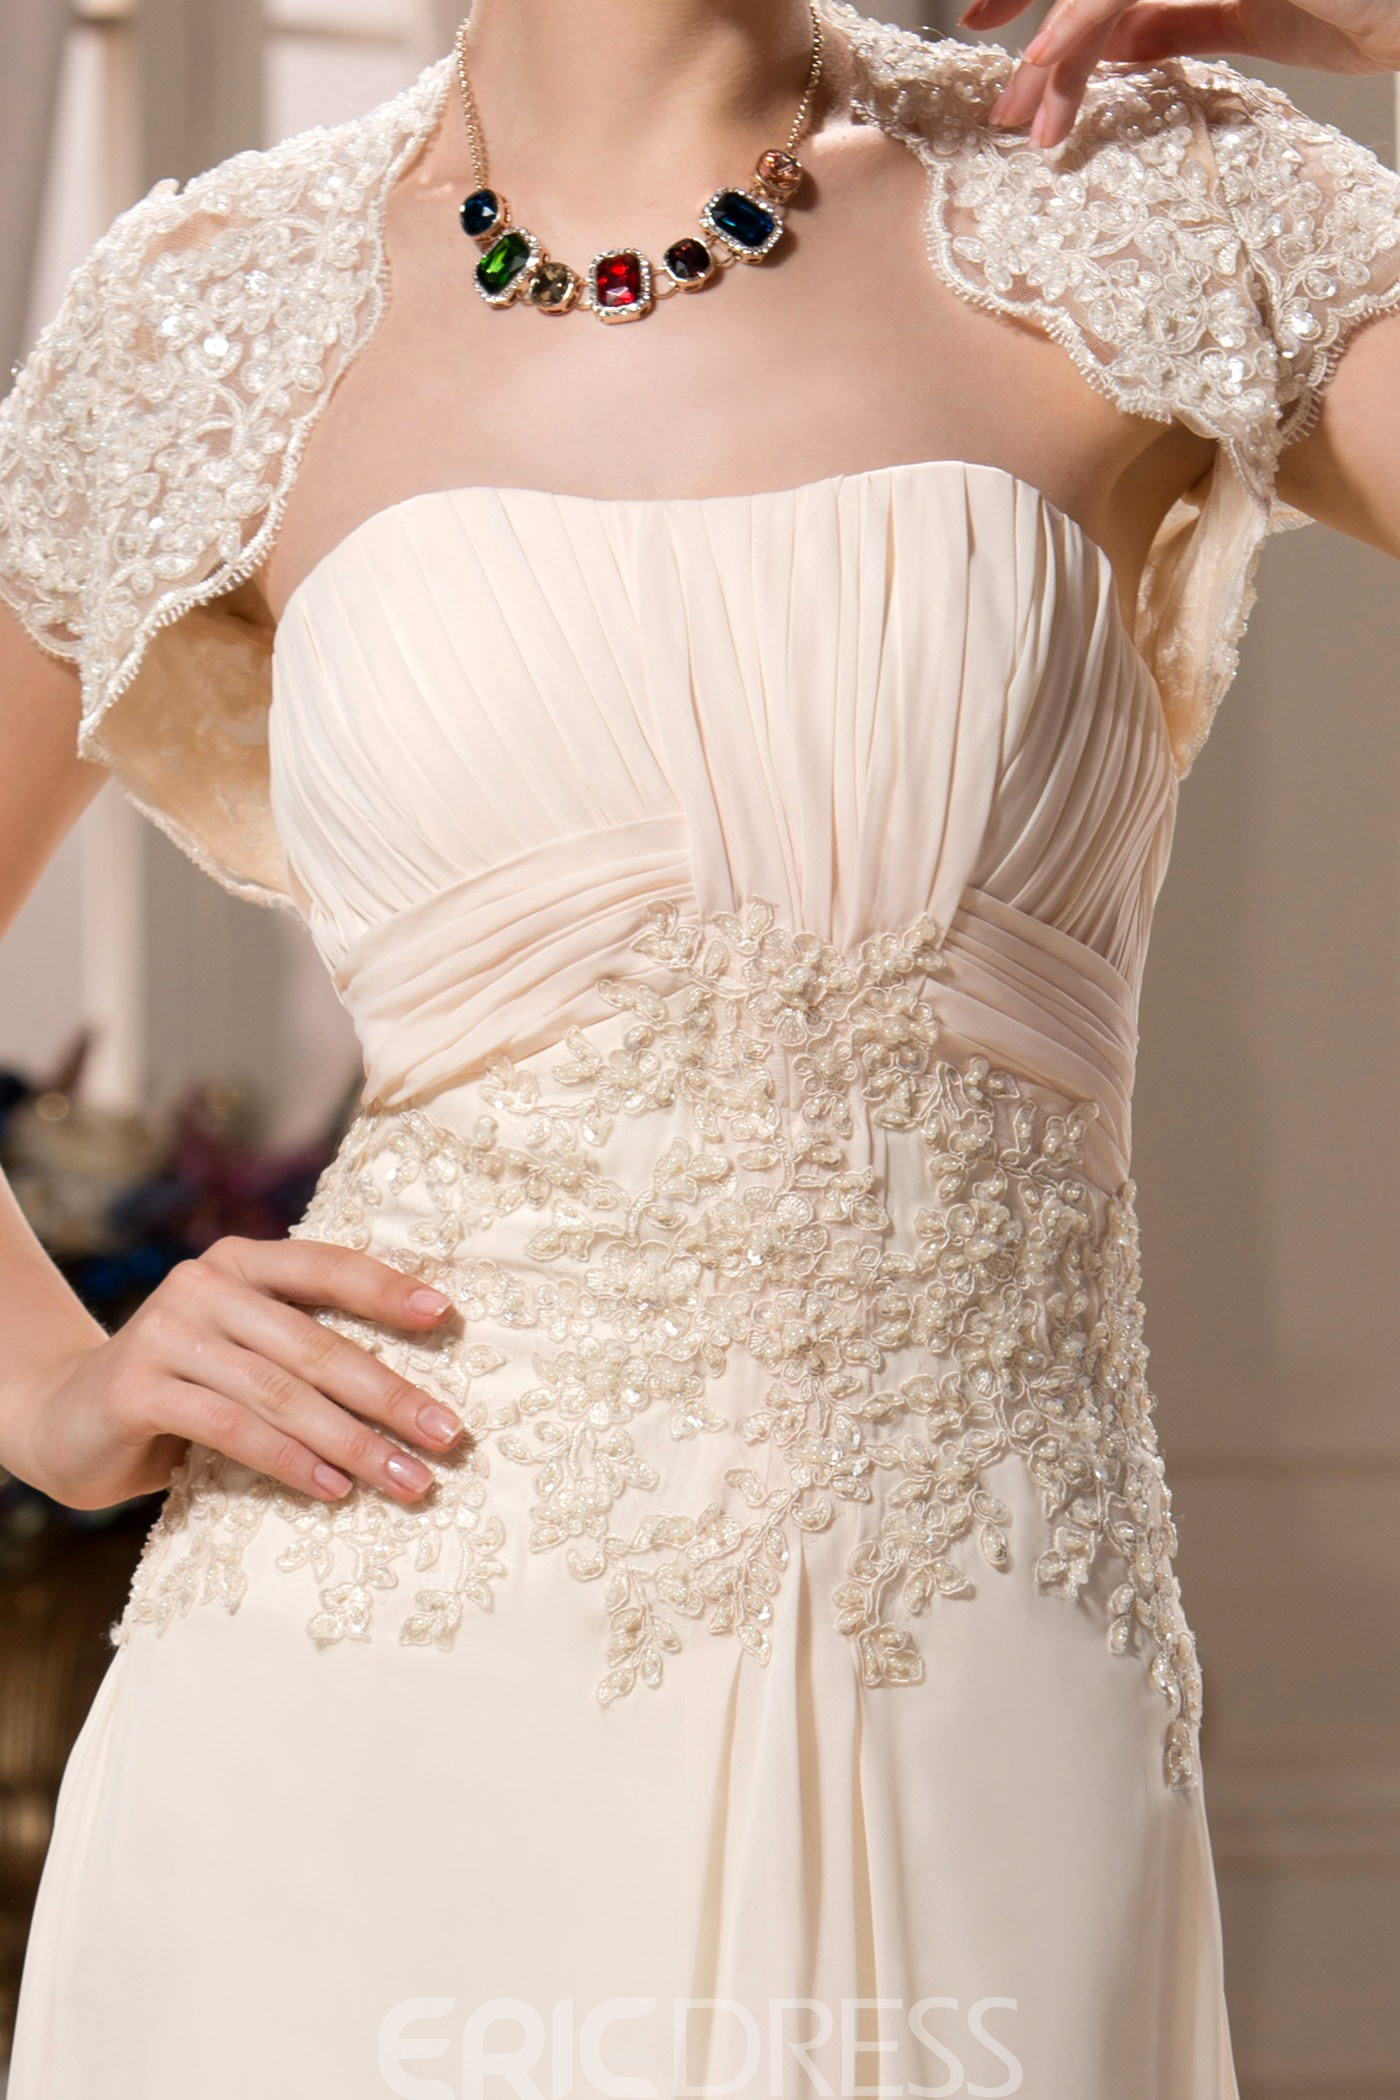 Marvelous Appliques A-Line Floor-Length Strapless Mother of the Bride Dress With Jacket